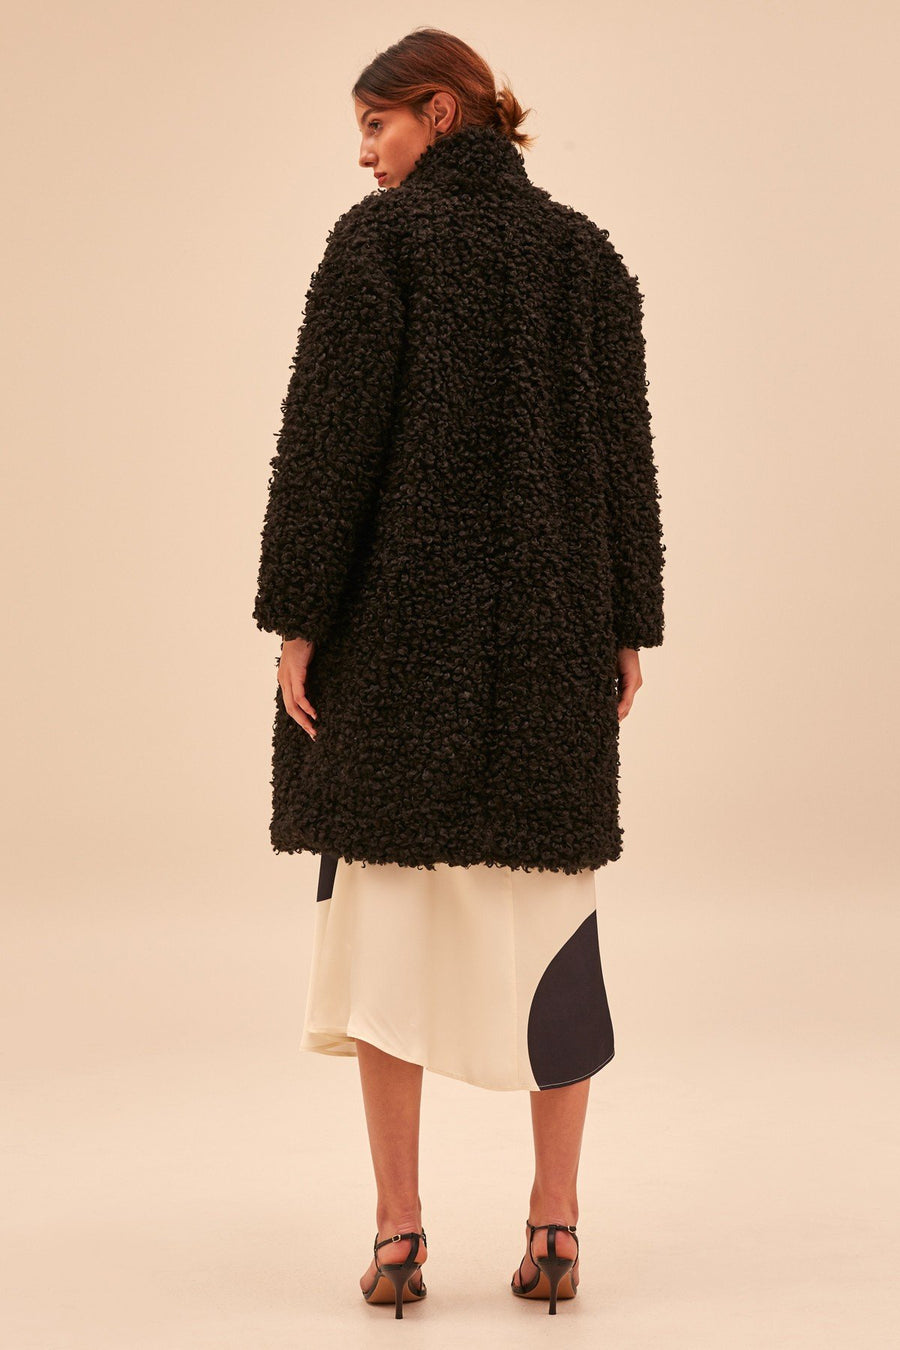 C/MEO COLLECTIVE - ABOUT NOW COAT - BLACK